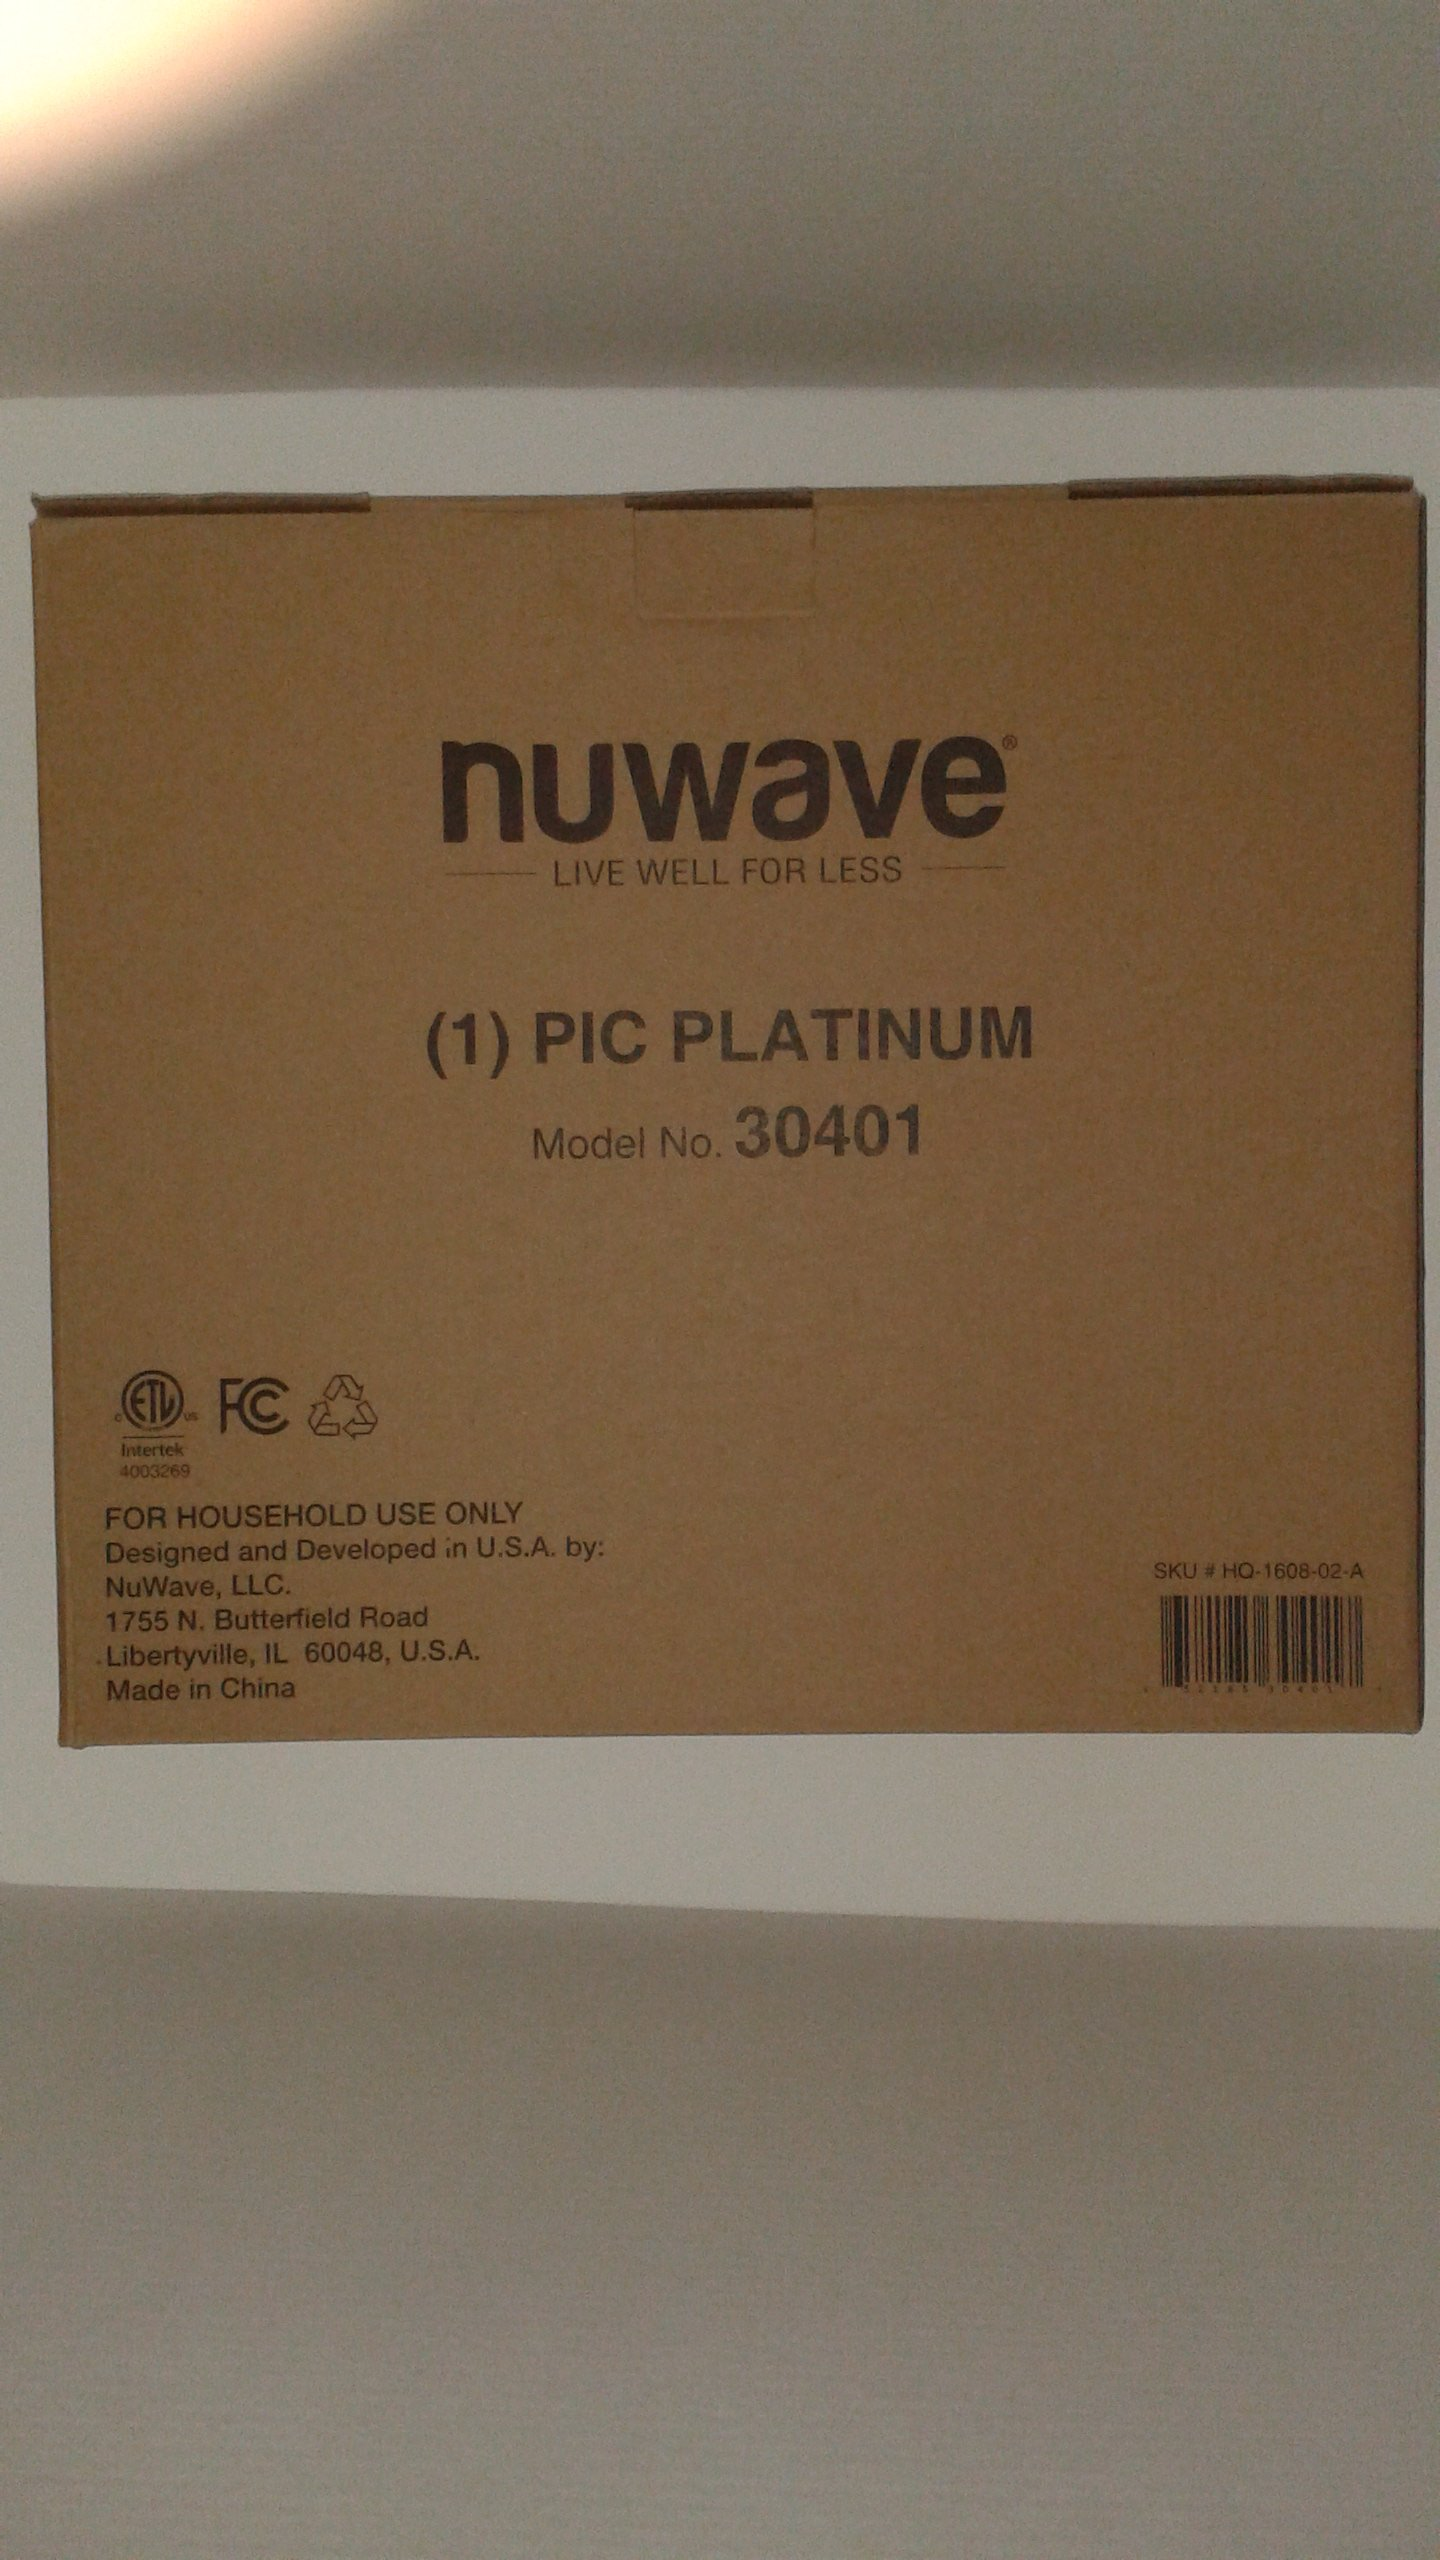 NuWave Platinum 30401 Precision Induction Cooktop, Black with Remote and Advanced Features for 2017 by NuWave (Image #9)